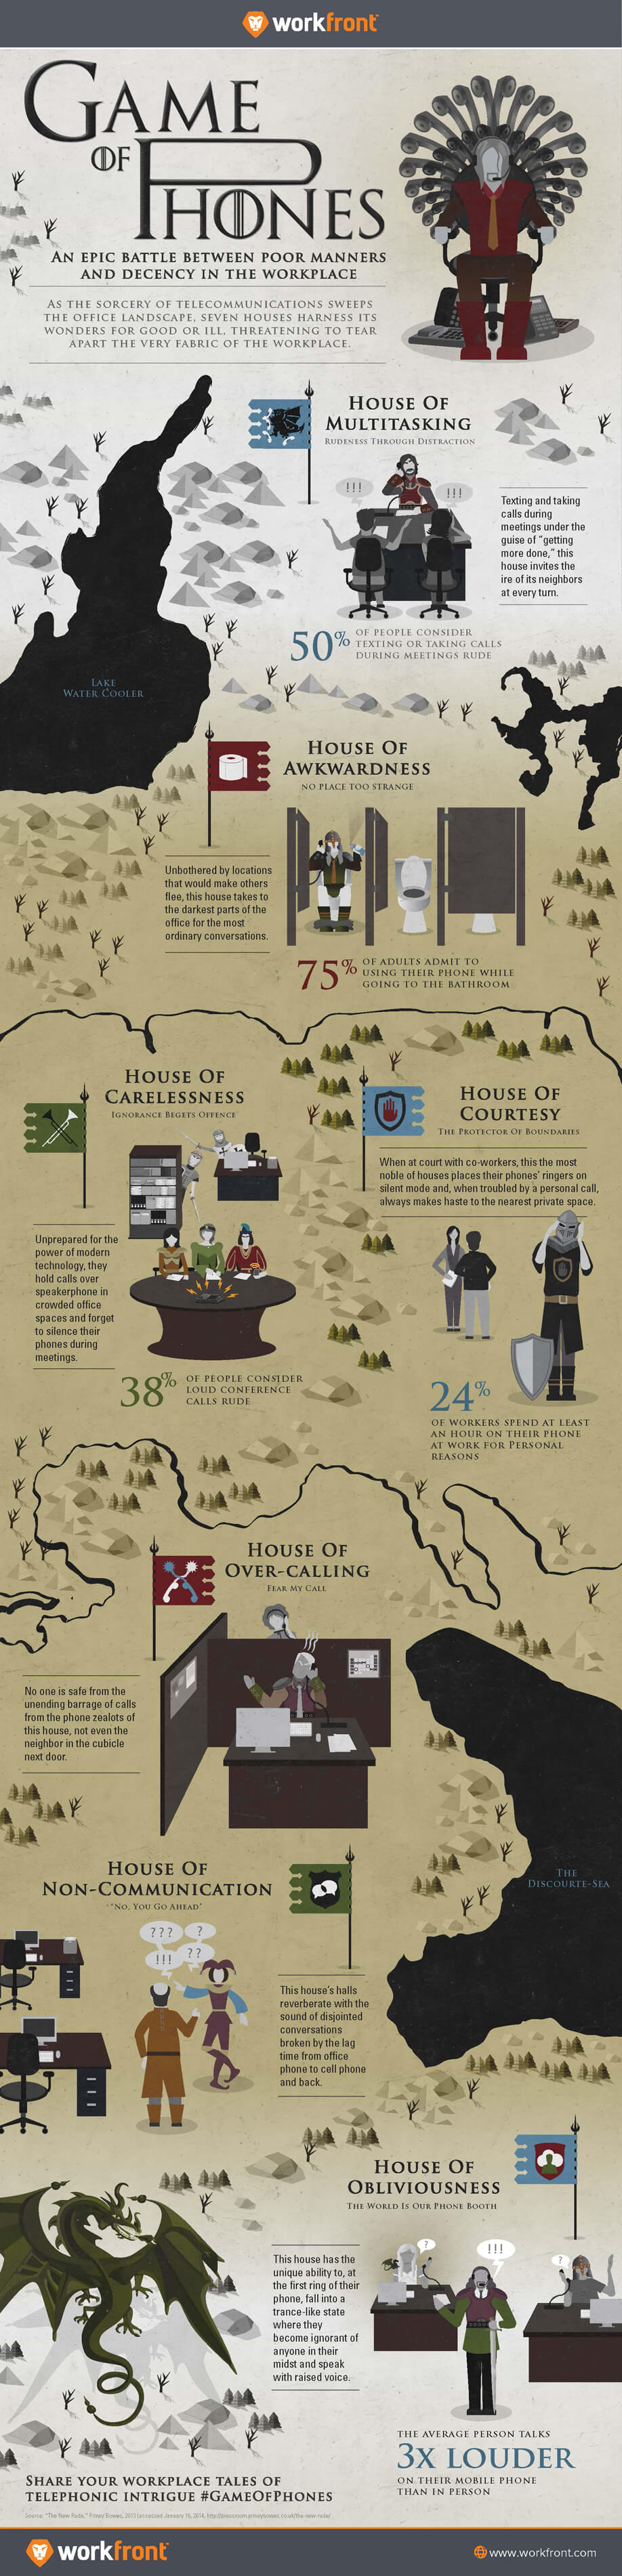 game_of_phones_infographic